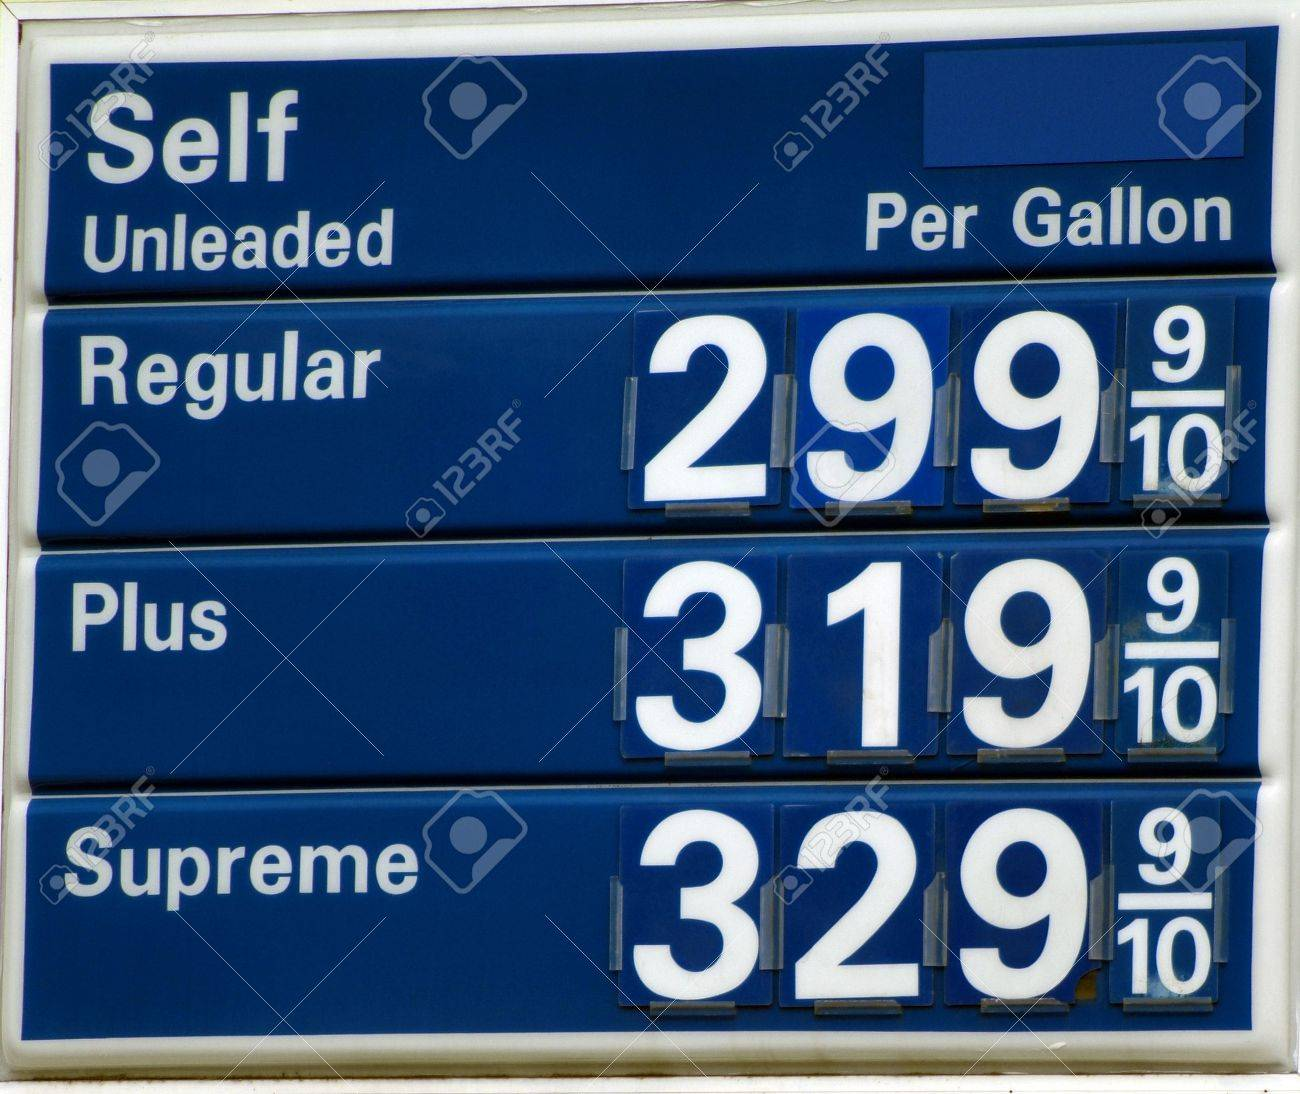 Gas prices above just below 3 dollars per gallon in the United